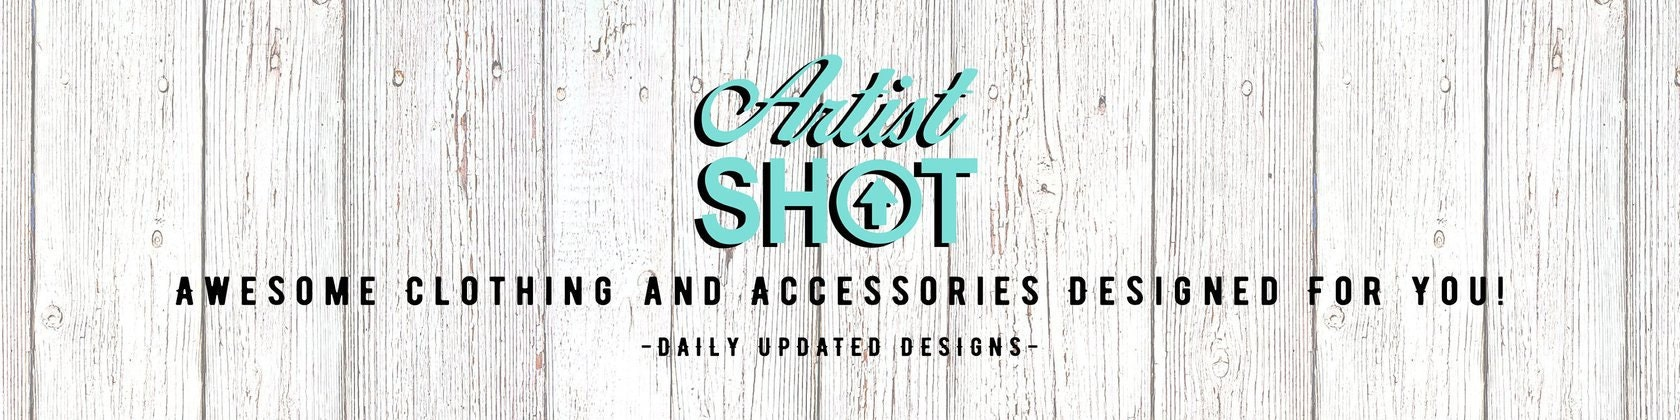 Awesome Clothing and Accessories Designed For You by Artistshot adee681cef0d6